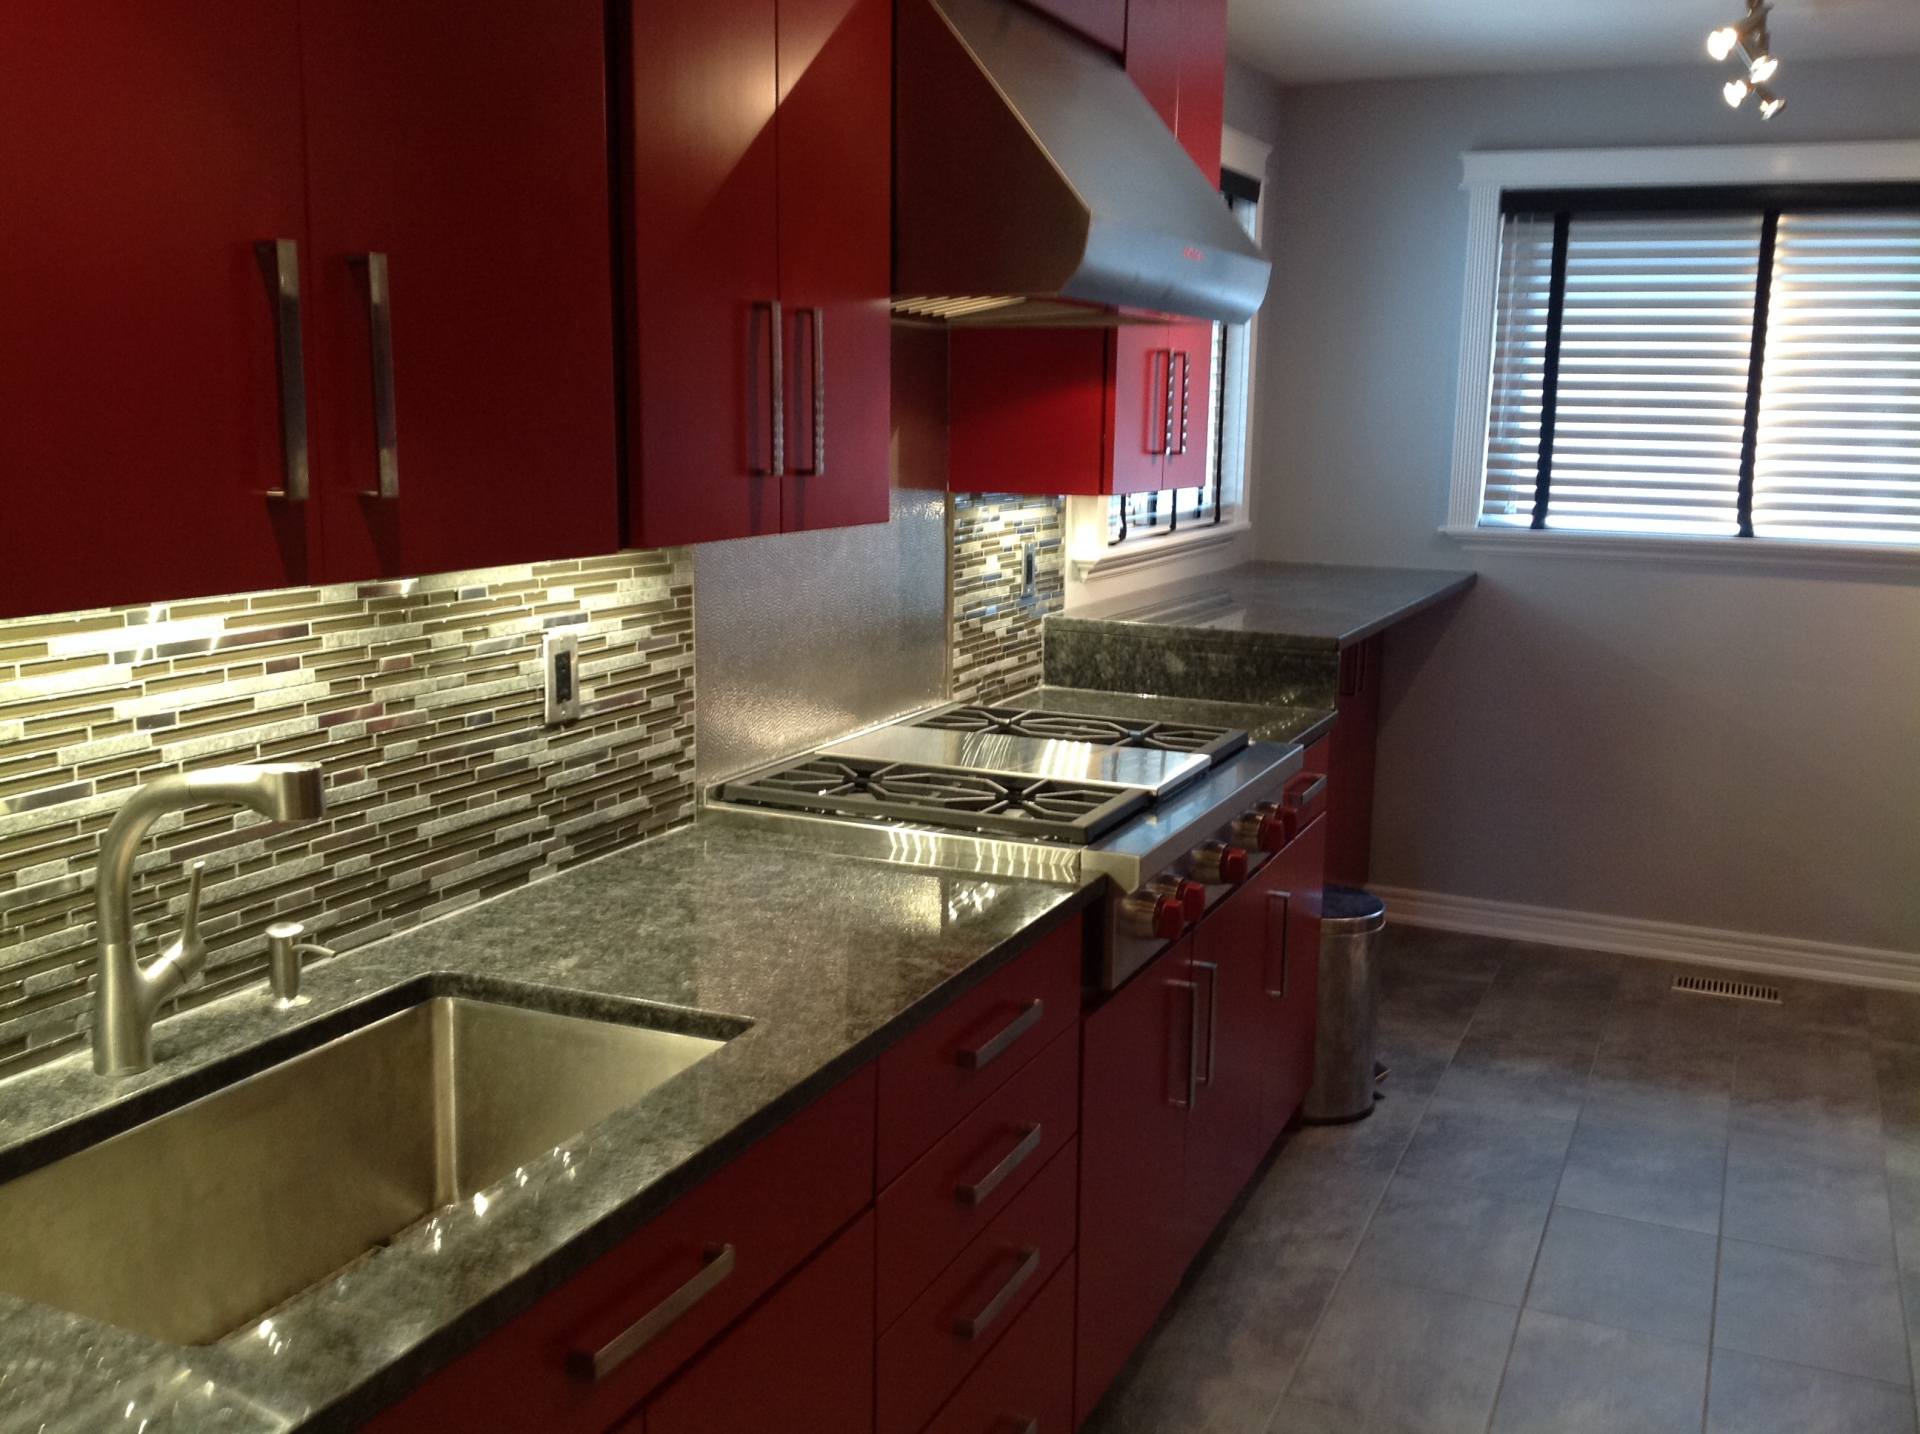 Kitchen painted in red with Gas top stove and Stainless steel range hood